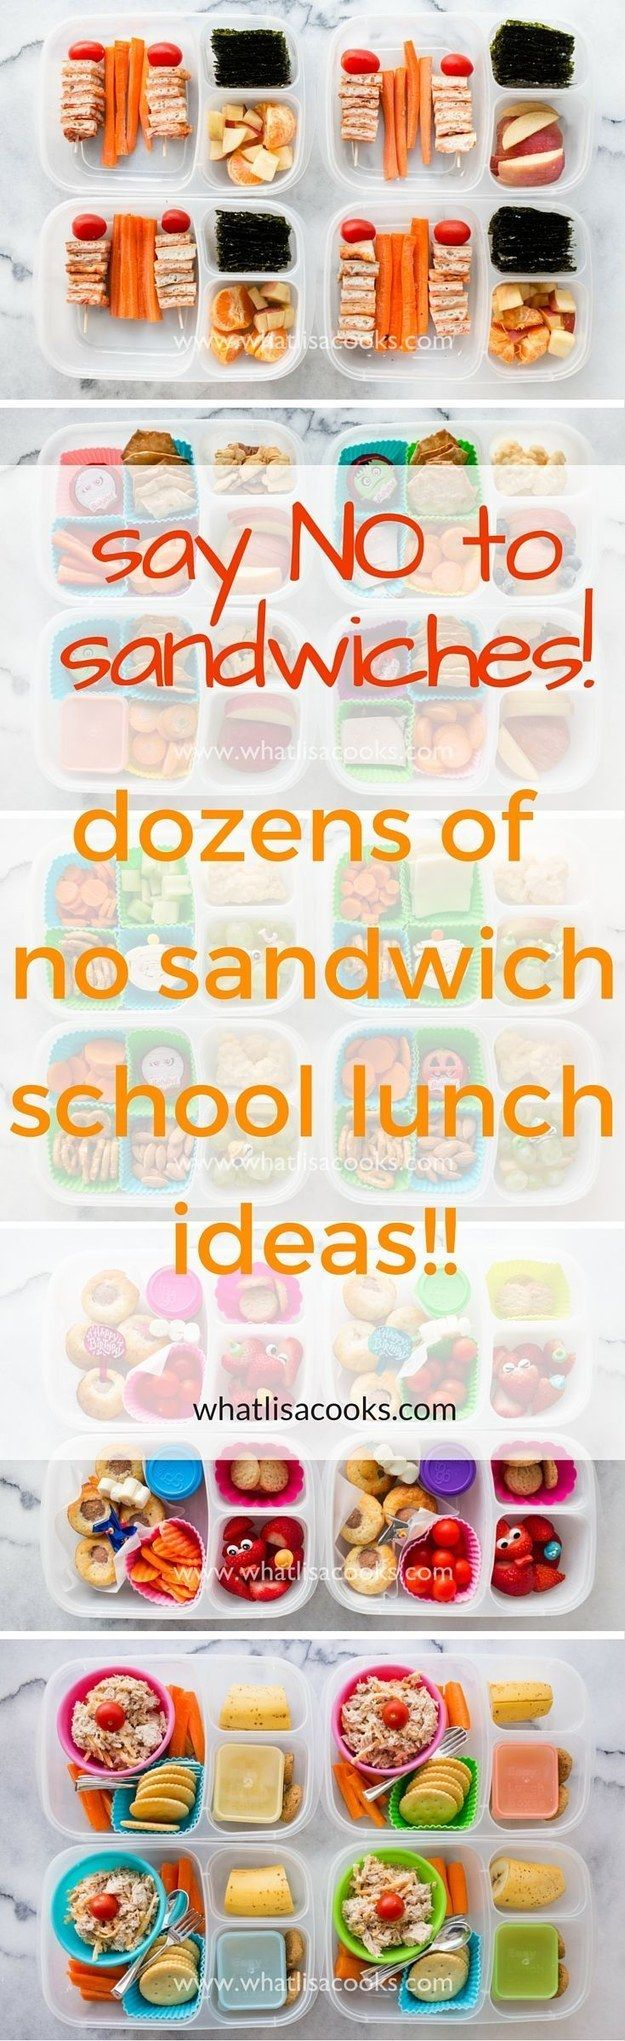 No-sandwich lunch ideas.   These Are The Top Parenting Searches On Pinterest In 2016 (So Far)